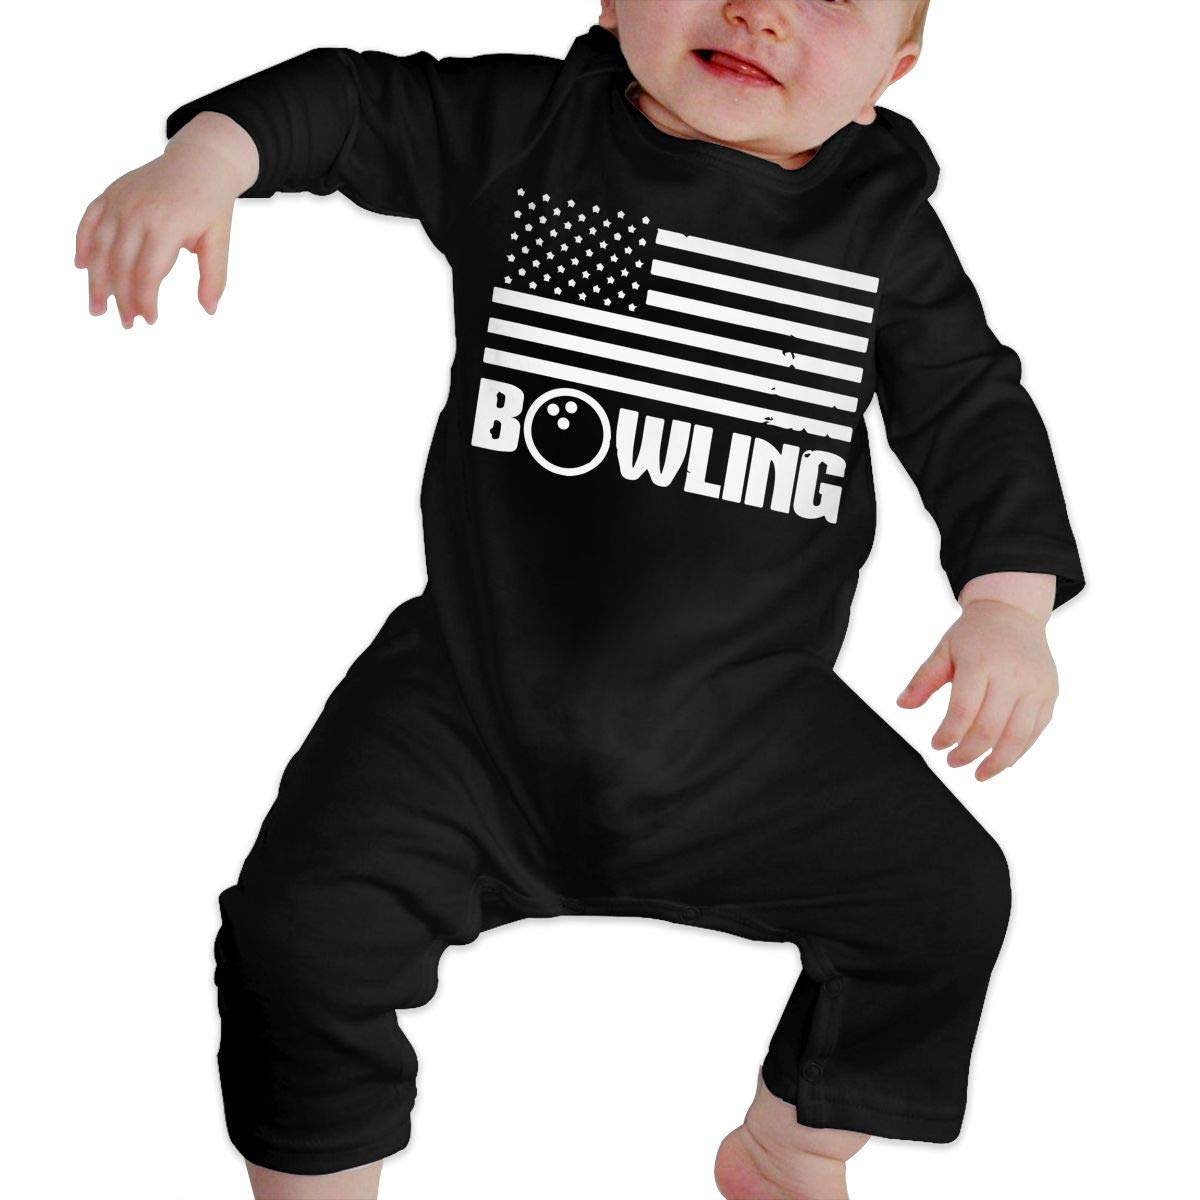 LBJQ8 Bowling American Flag Newborn Baby Girl Infant Sleep and Play Jumpsuits Playsuit Outfits